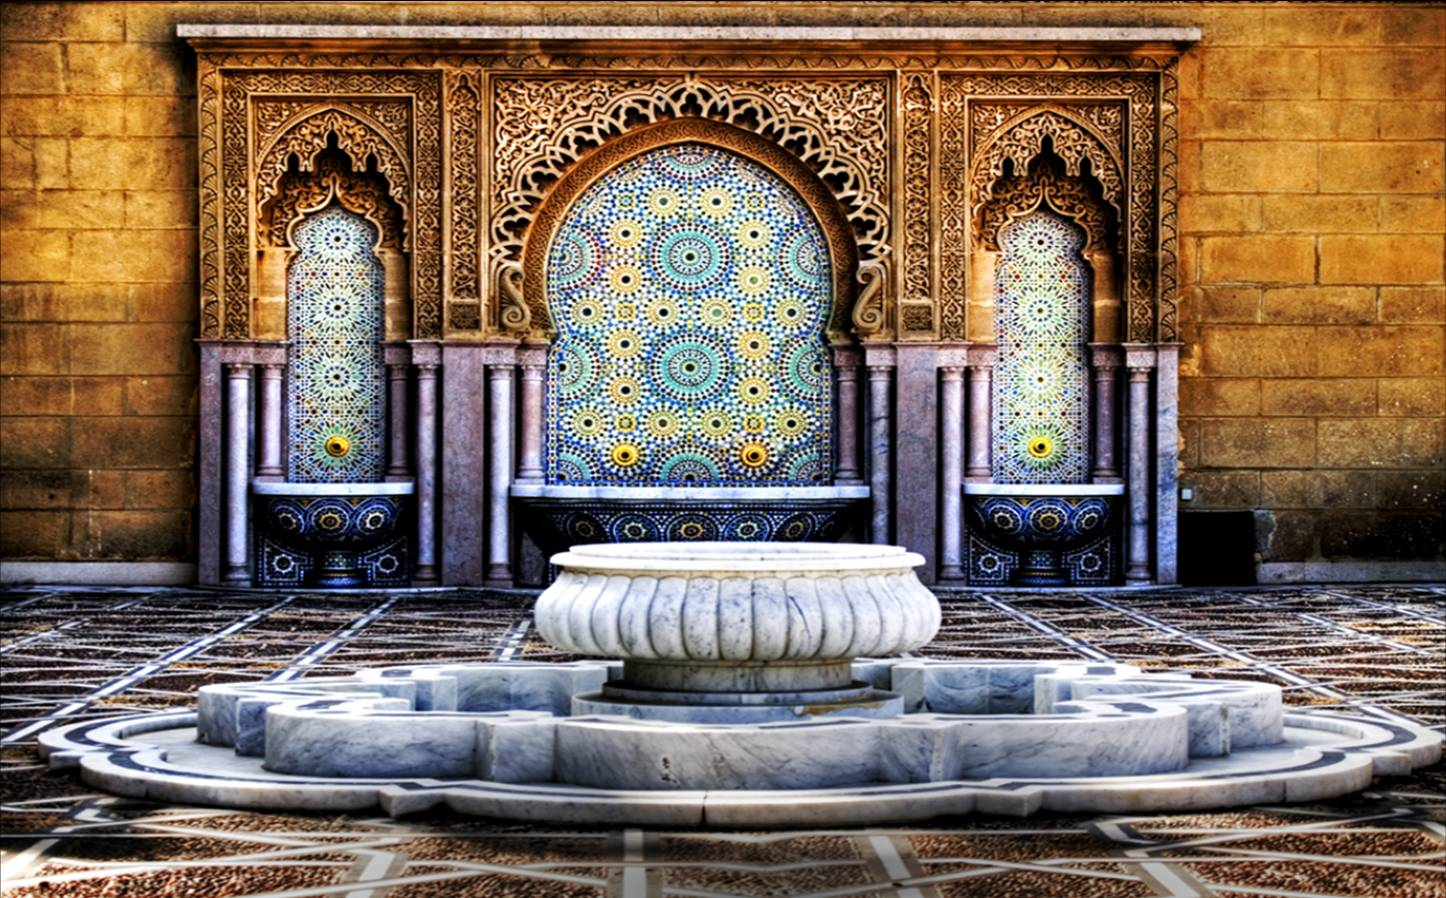 El reino plantae decorar un patio al estilo andalus for Decoracion estilo arabe